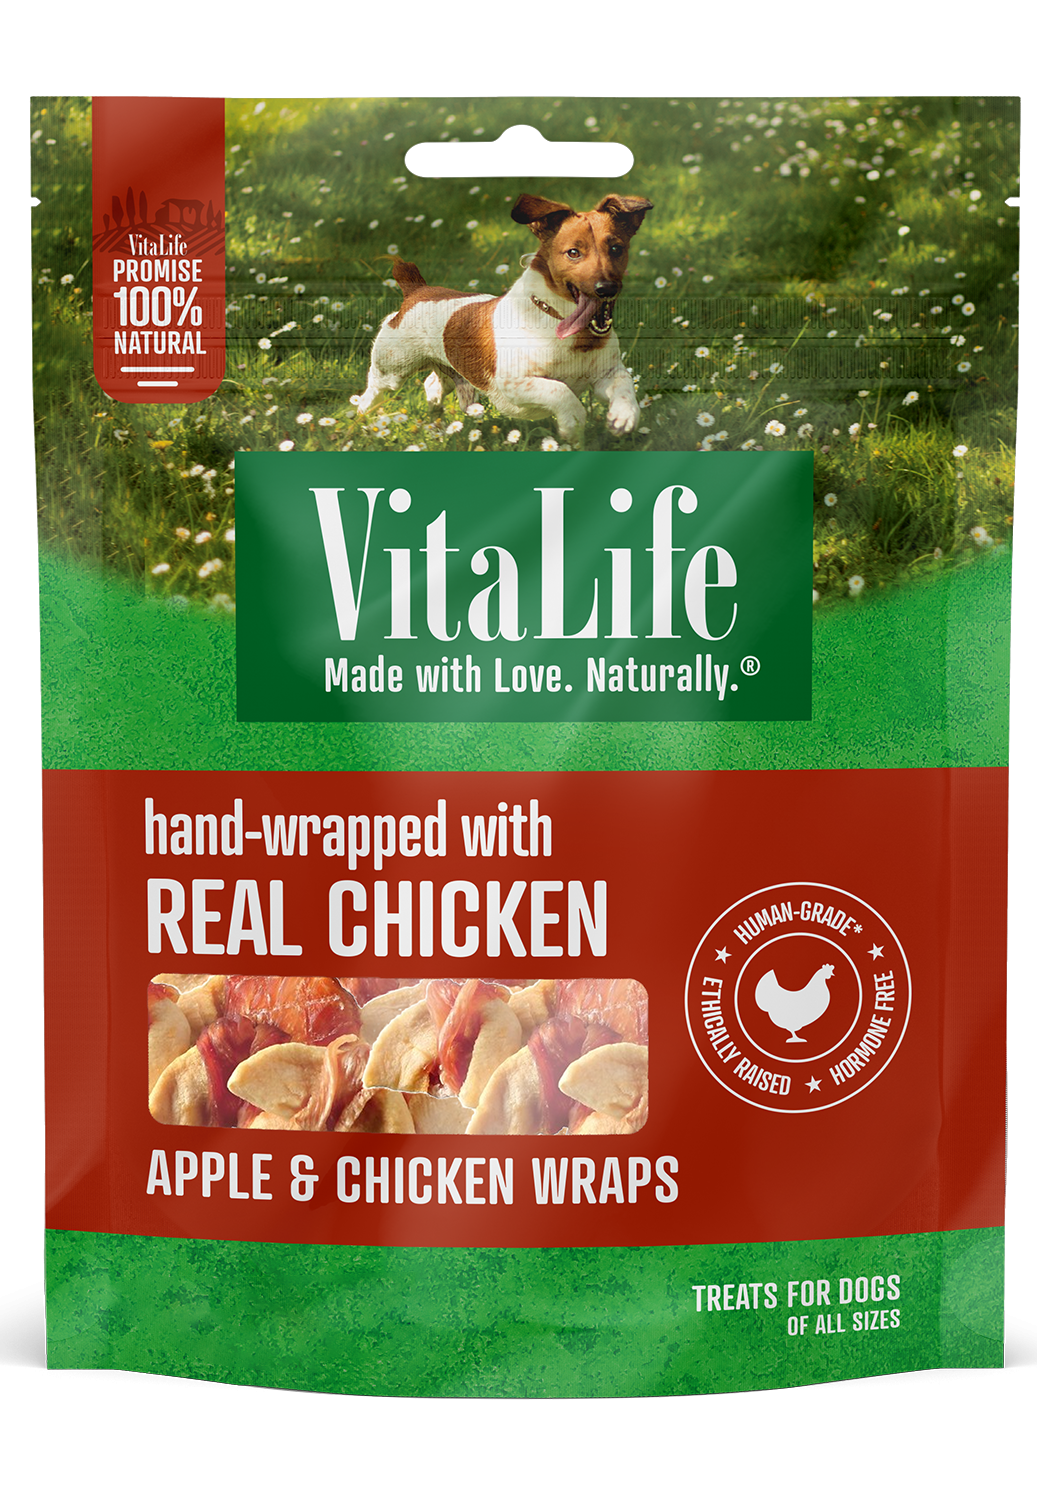 VitaLife PNG apple and chicken pack image